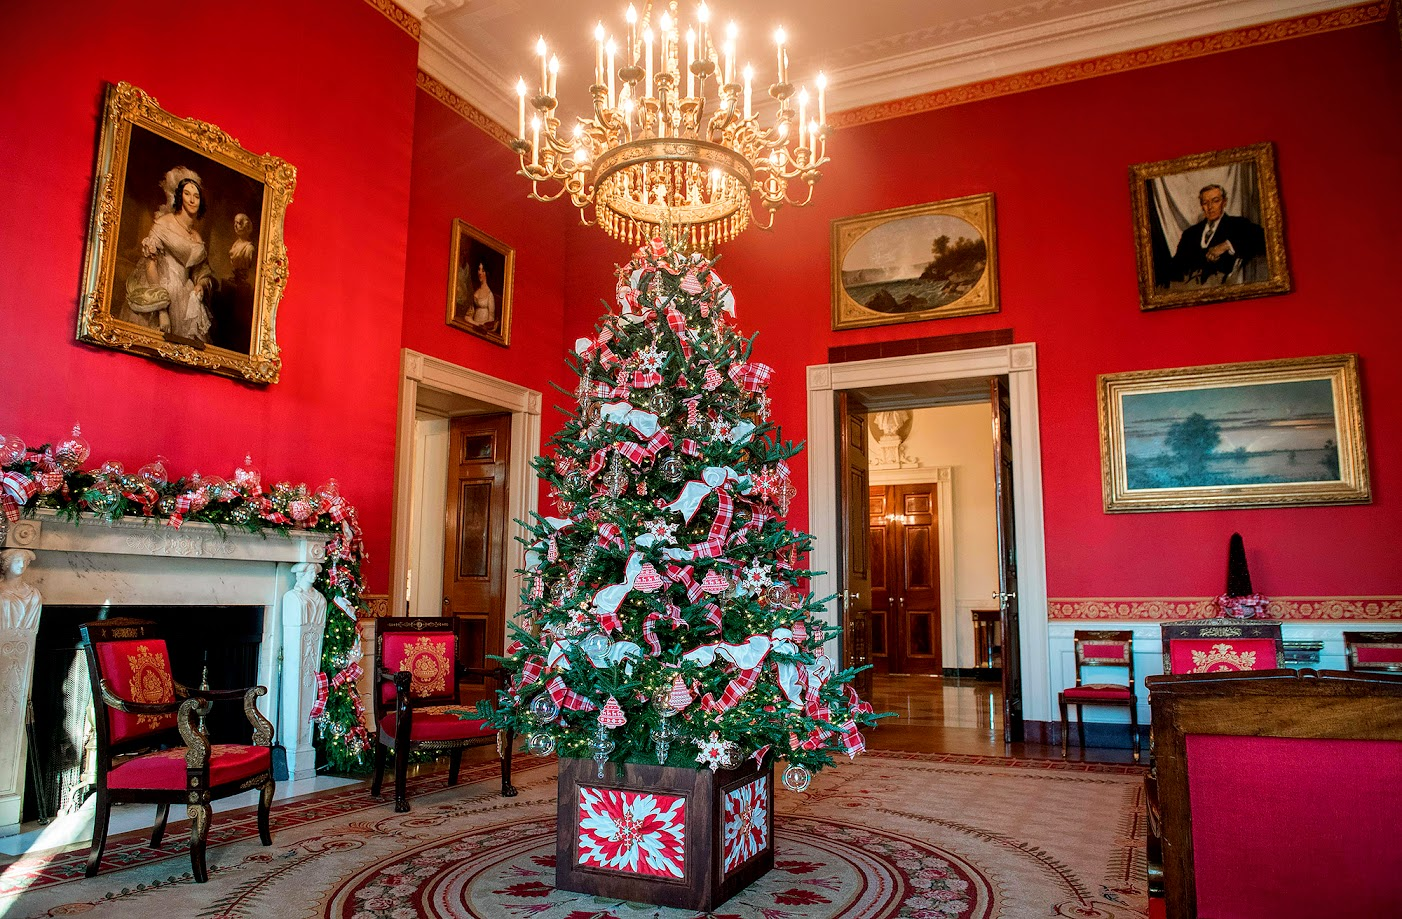 Cote De Texas The First White House Christmas For The New